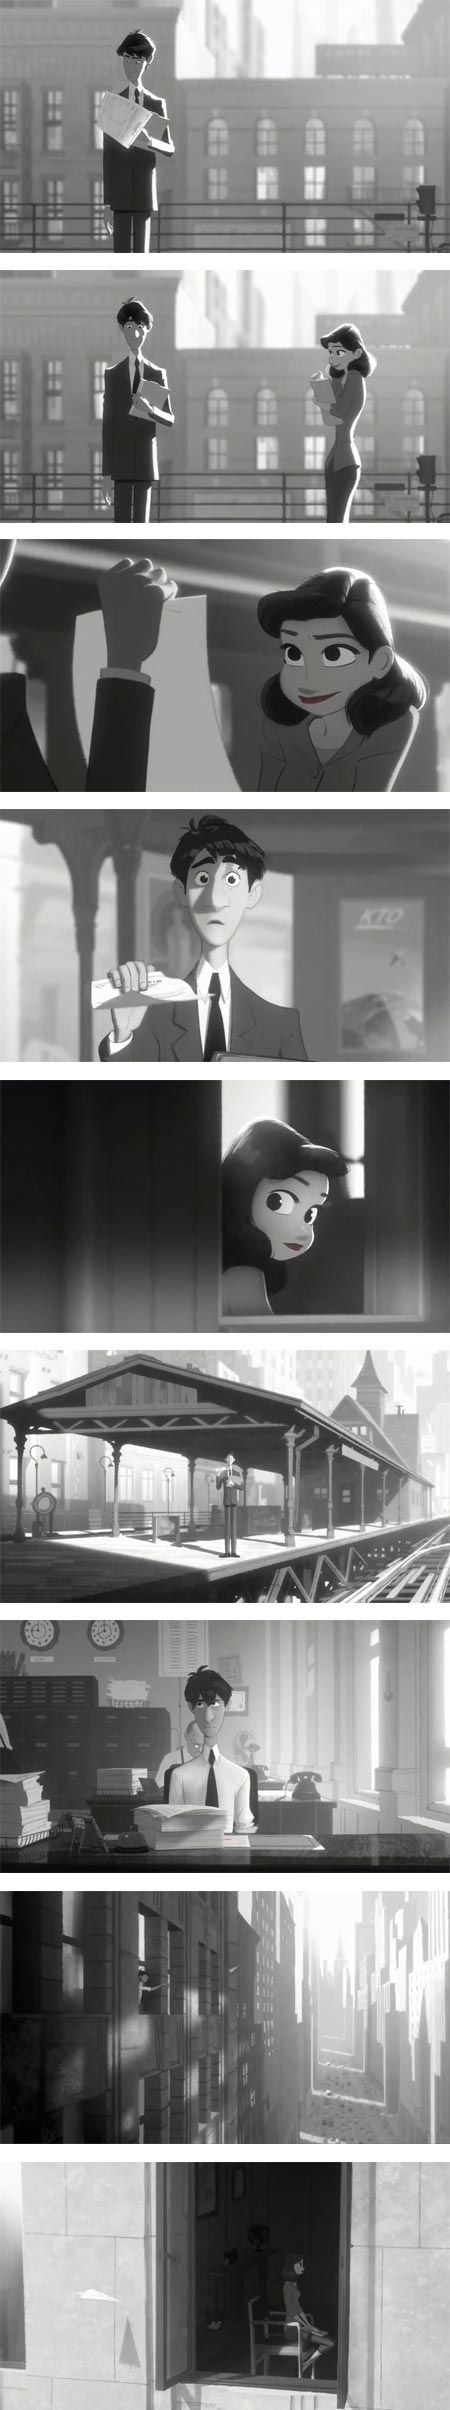 Probably the best animated short I've seen in years. Seeing a storyboard for this would really be interesting.